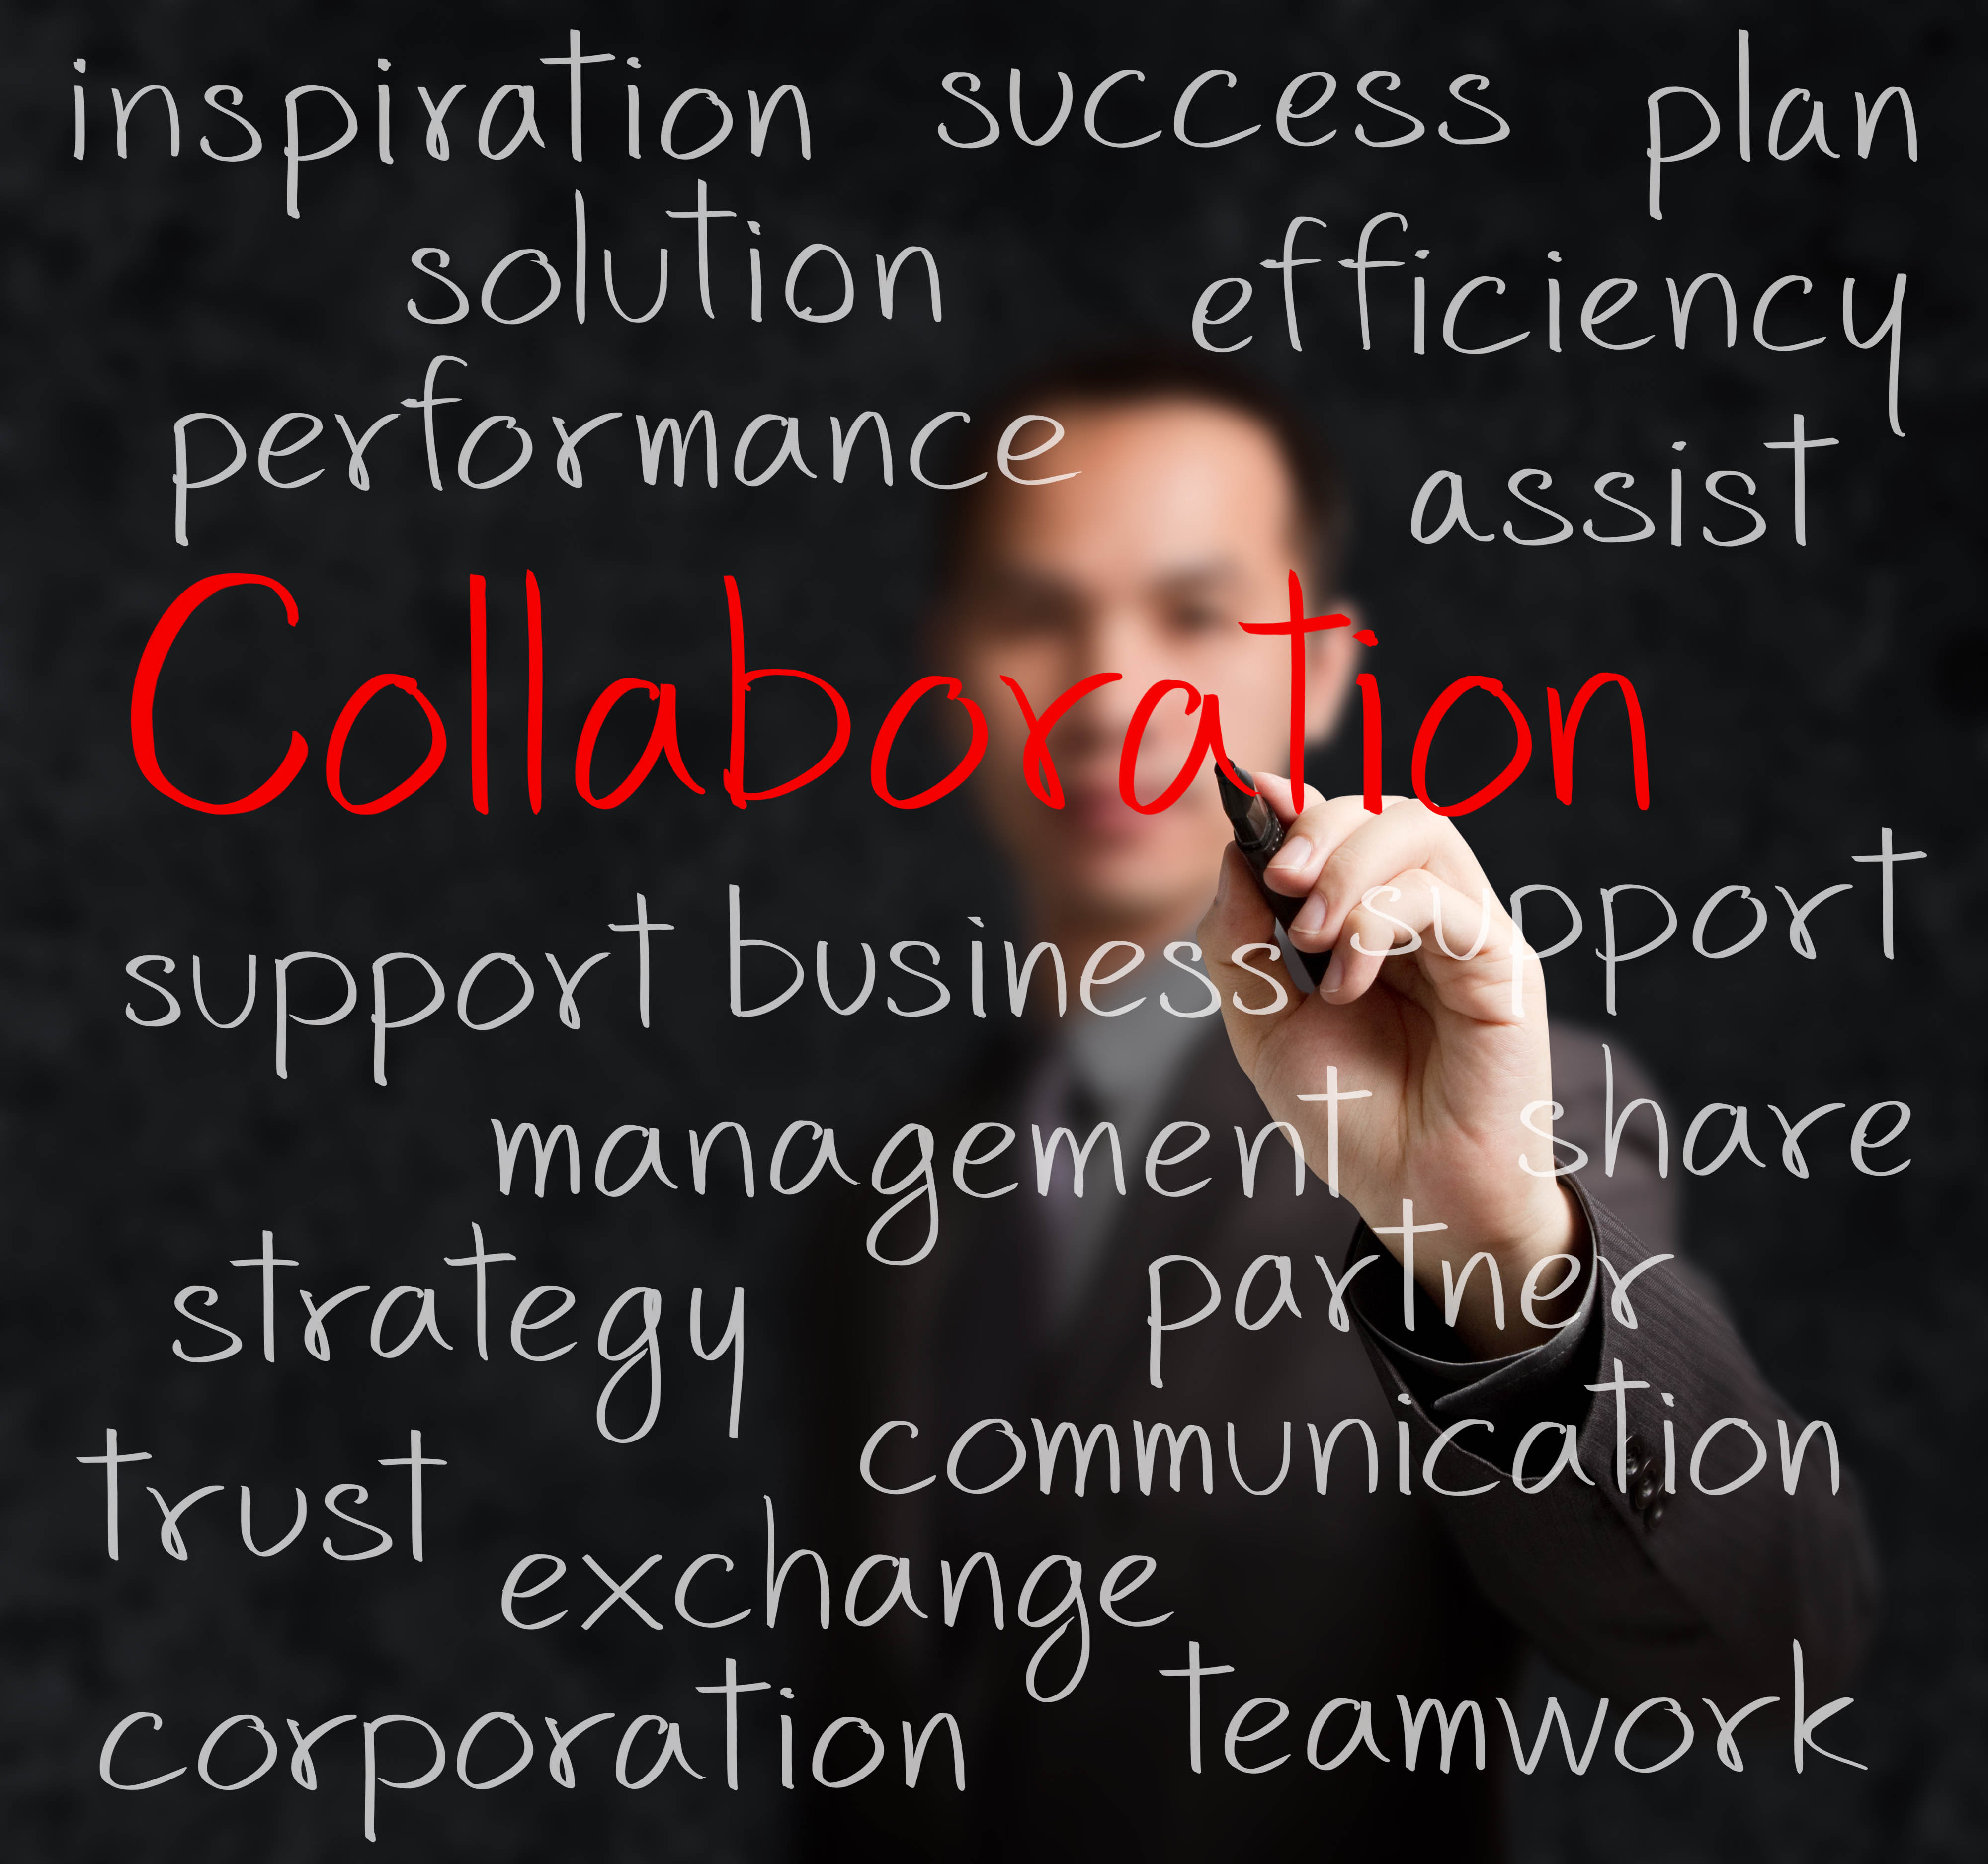 Angel Investment & Collaboration